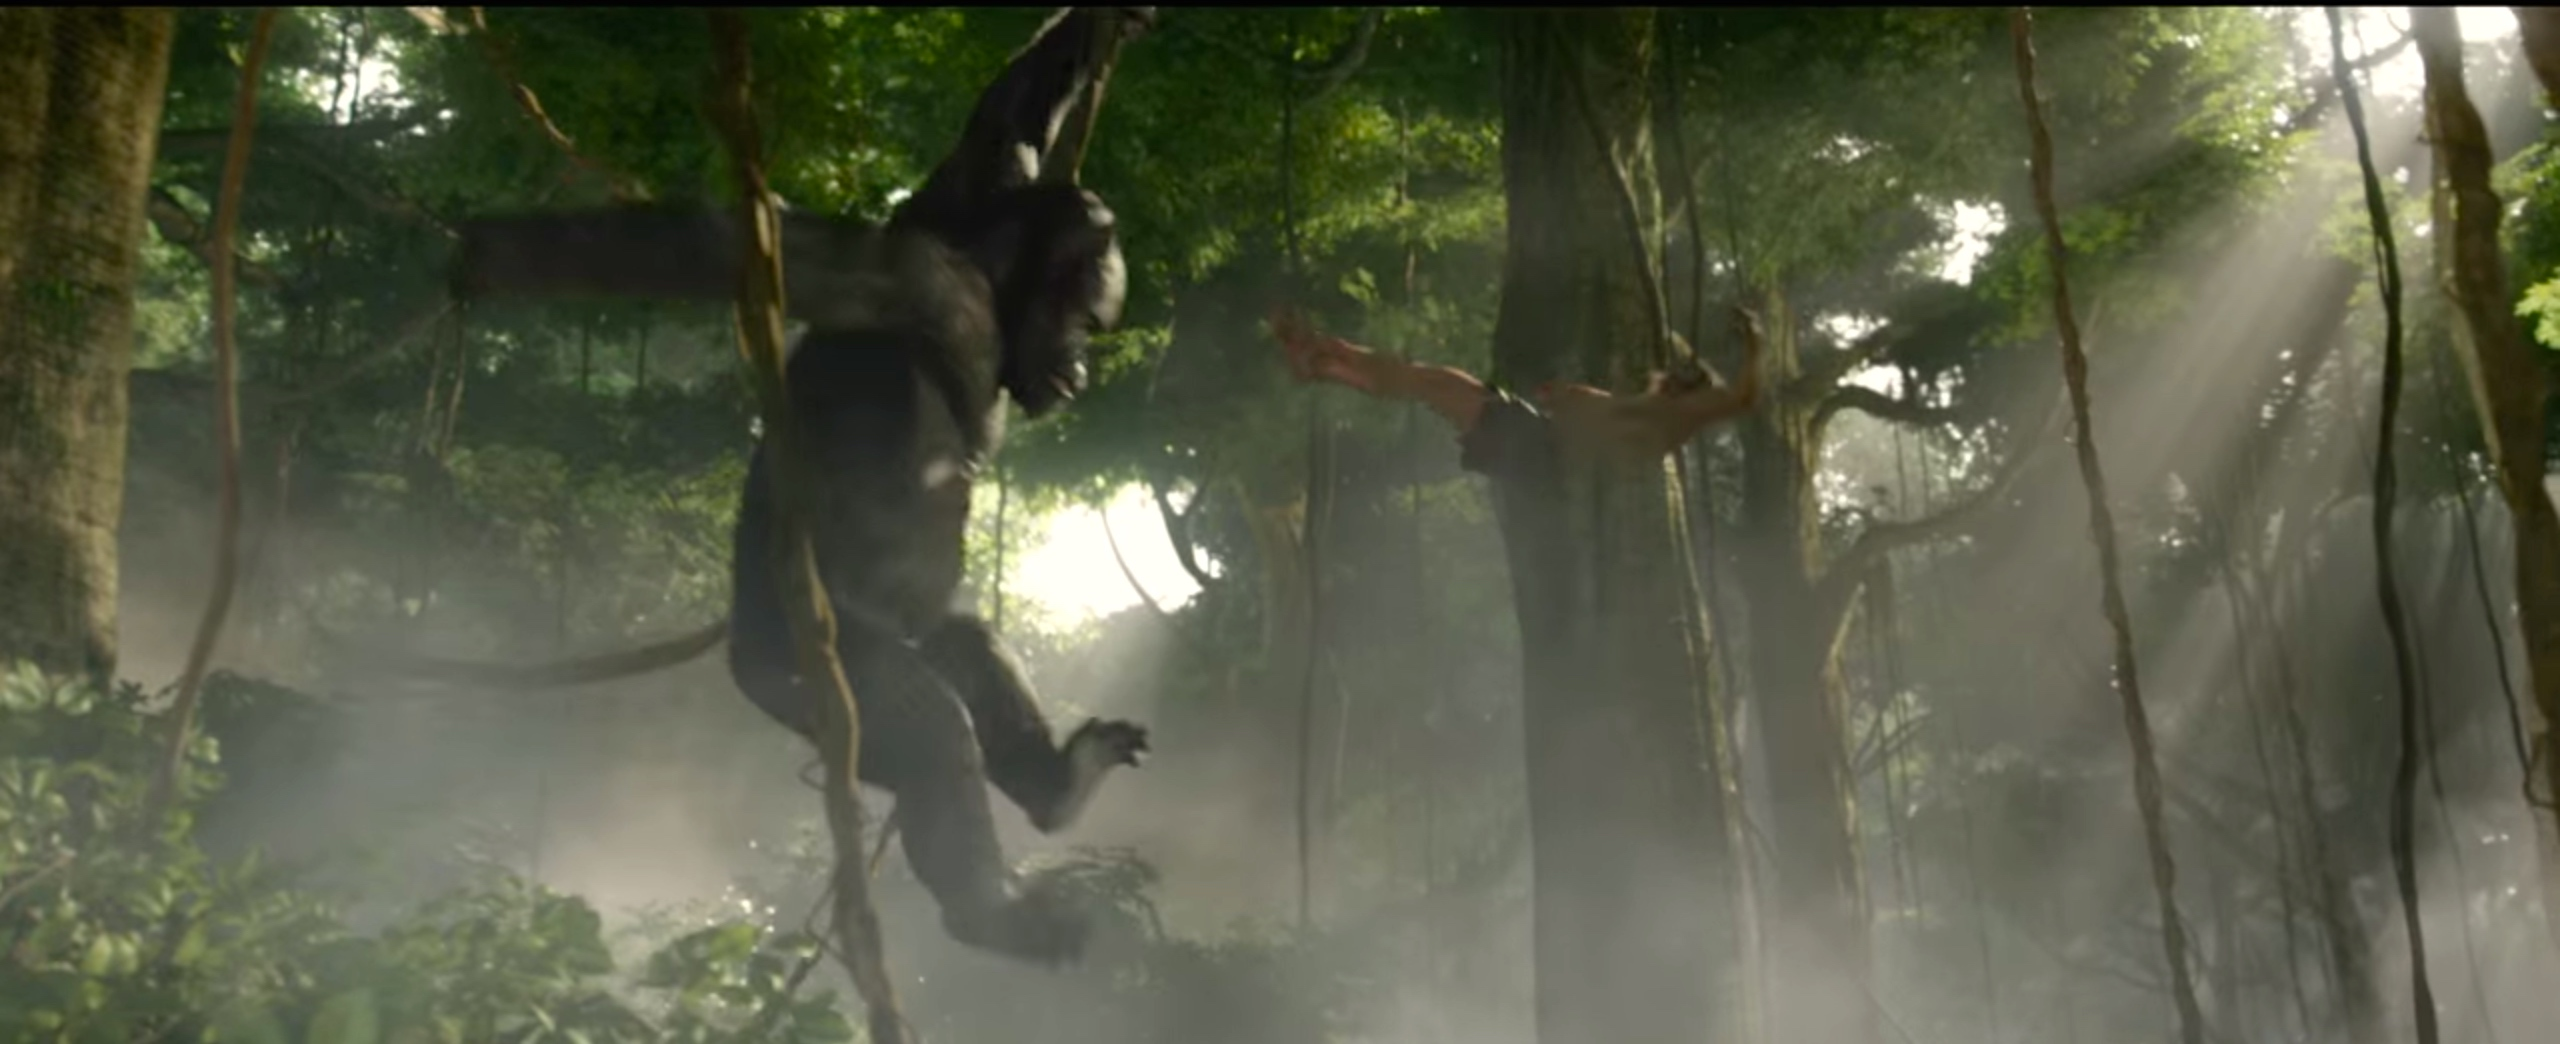 Gorillas flying in Legend of Tarzan - Mangani is one of the made-up languages in the film